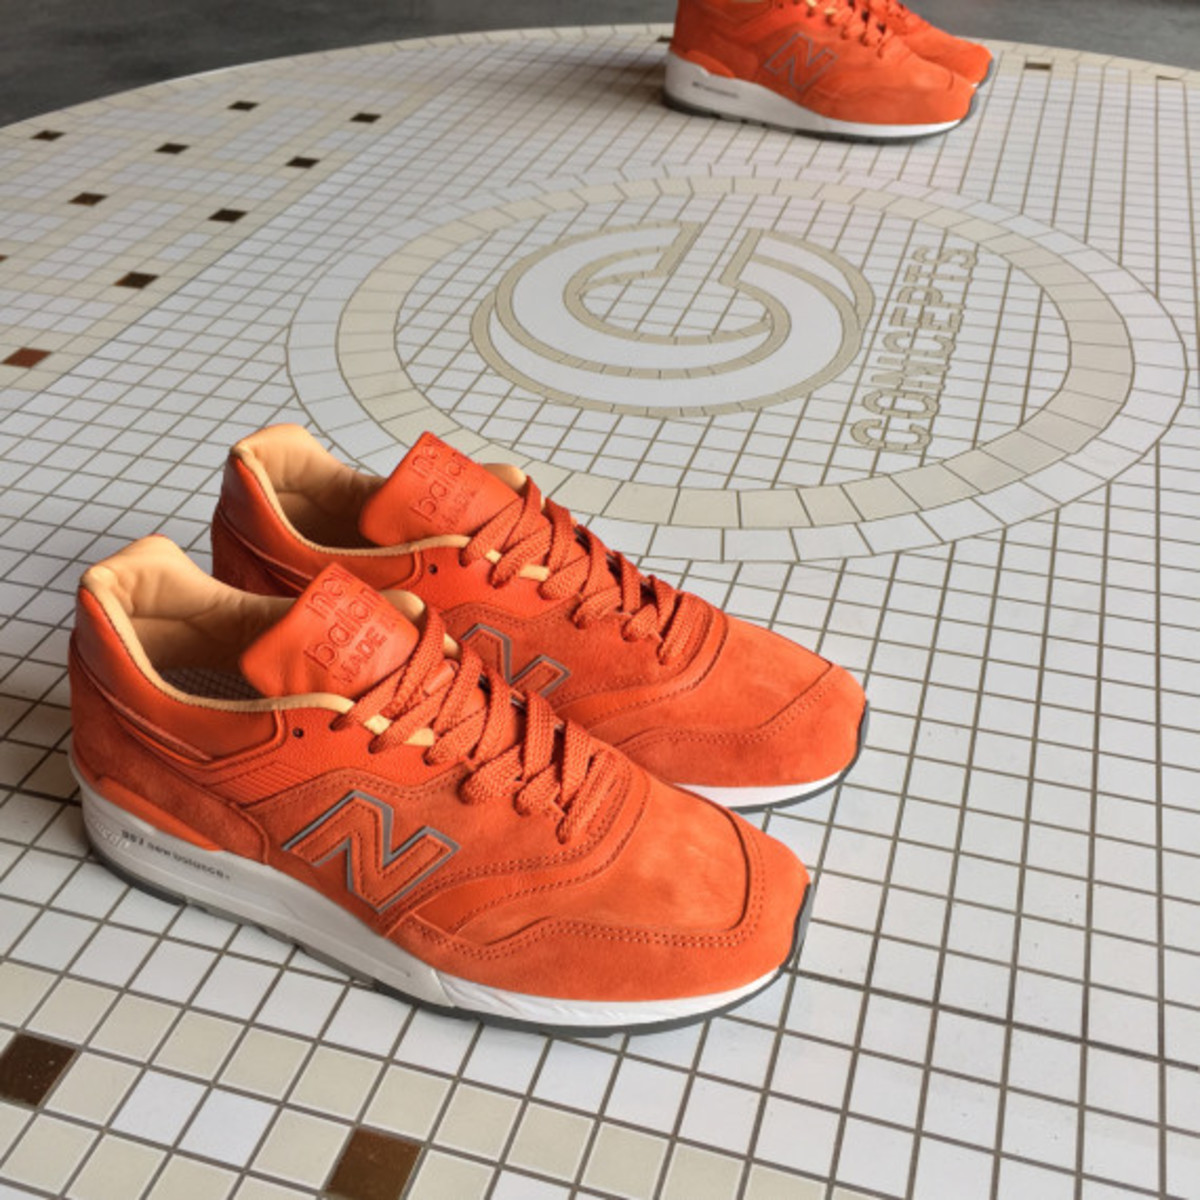 concepts-new-balance-997-luxury-goods-pop-up-store-09